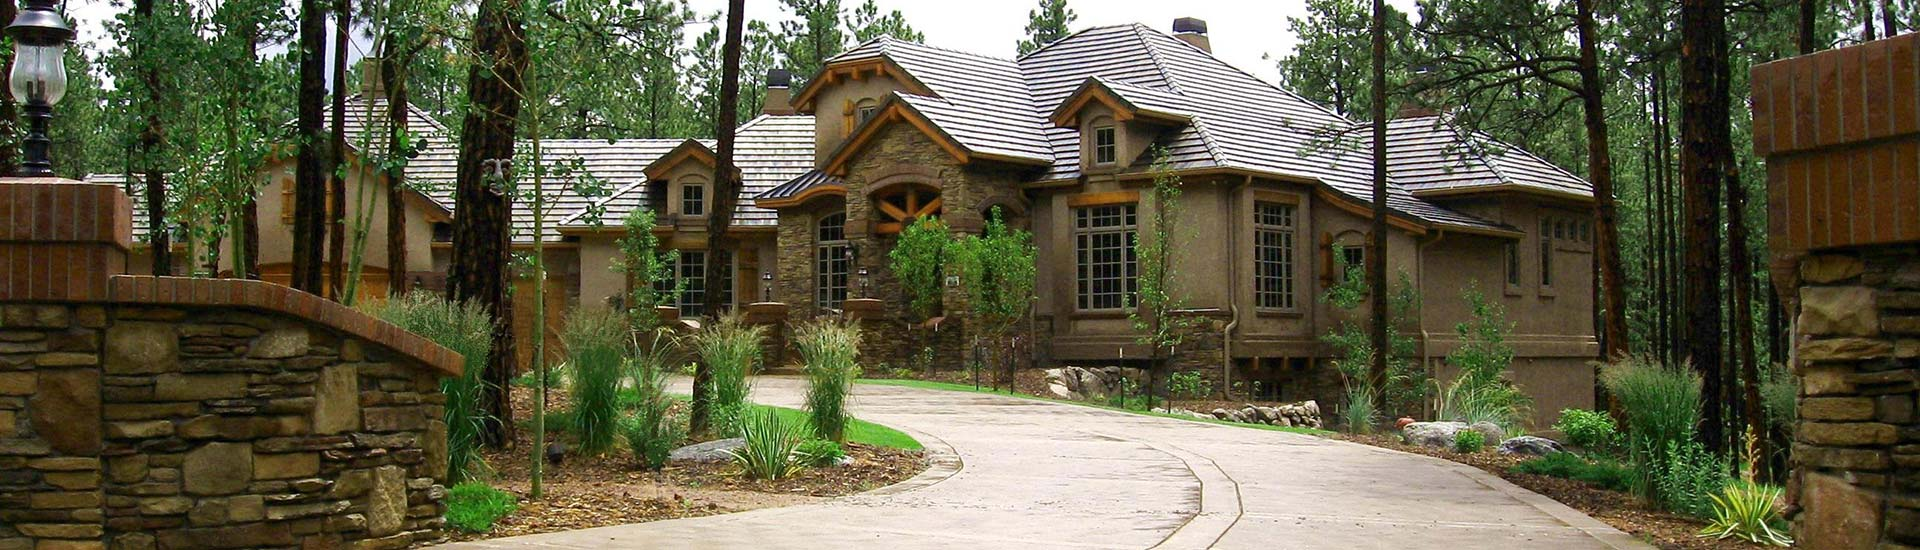 Custom Home Designer. Custom Home Designs in Colorado Springs  CO Drafting Designer